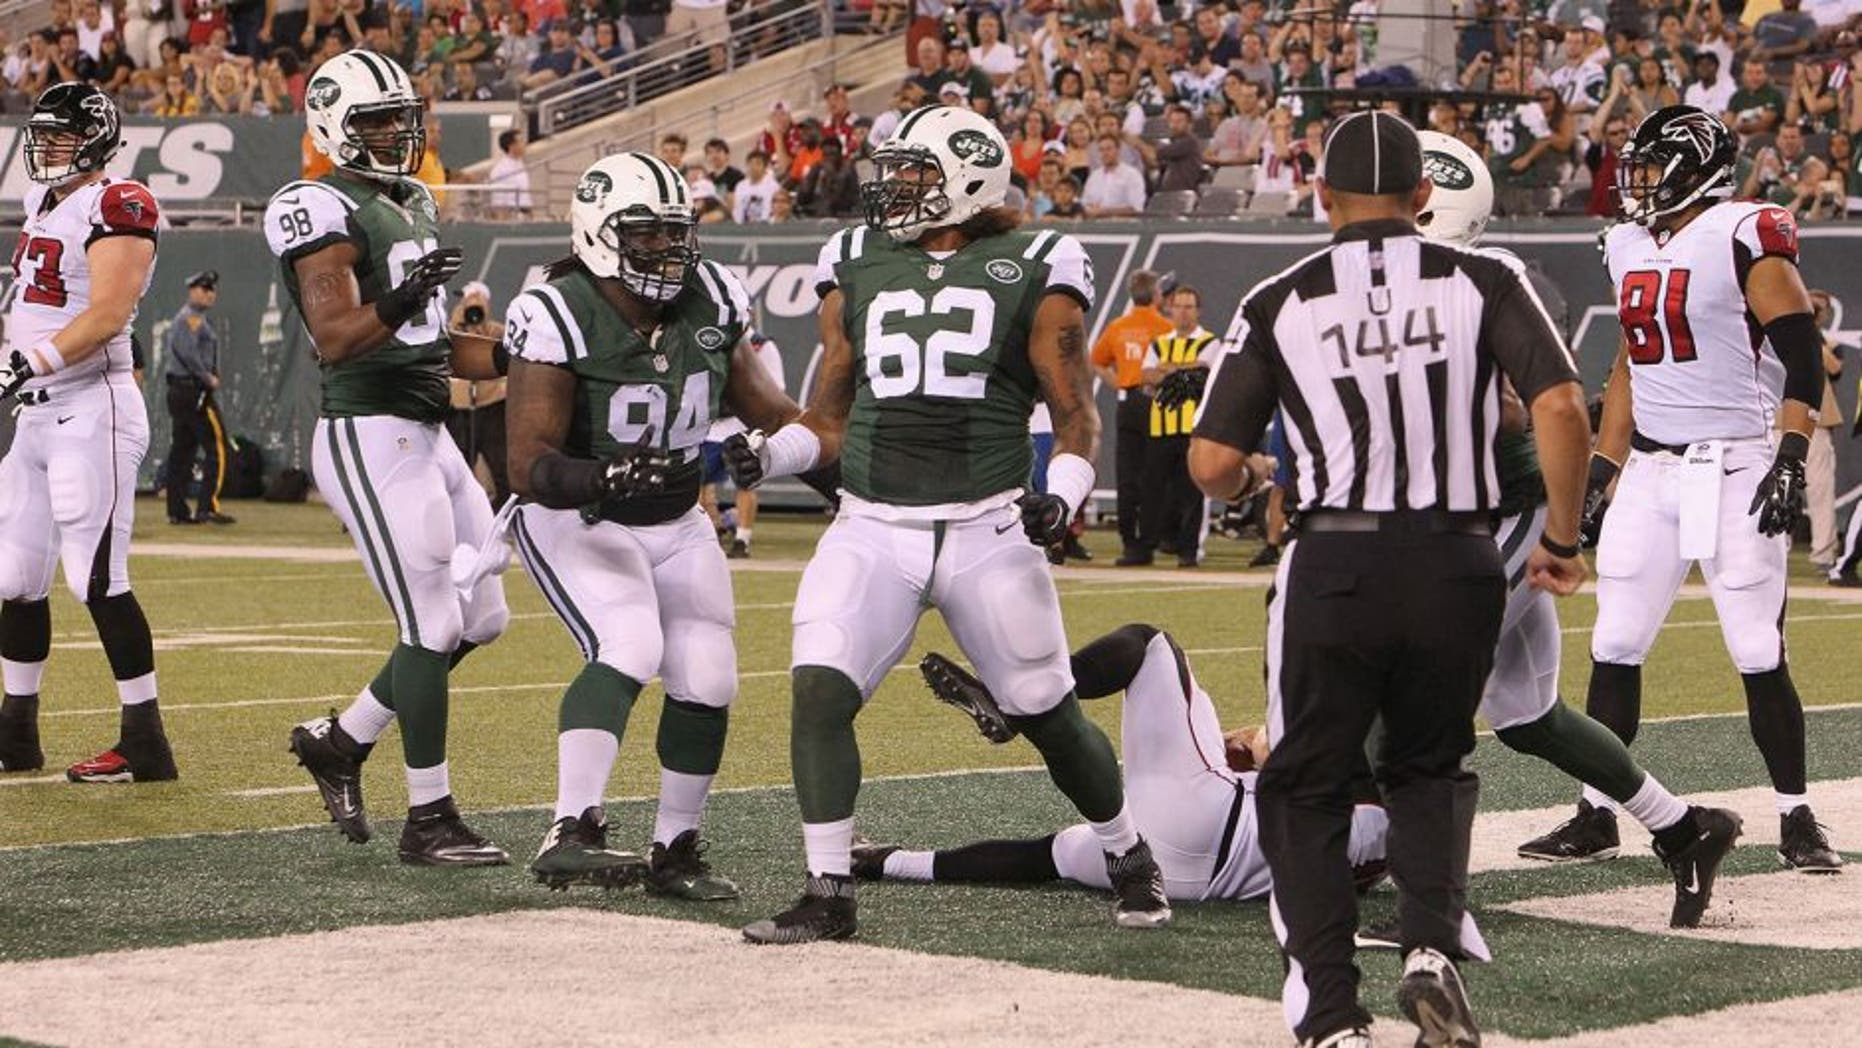 EAST RUTHERFORD, NJ - AUGUST 21: Defensive End Leonard Williams #62 of the New York Jets has a Sack and a Safety against the Atlanta Falcons at MetLife Stadium on August 21, 2015 in East Rutherford, New Jersey. (Photo by Al Pereira/Getty Images for New York Jets)